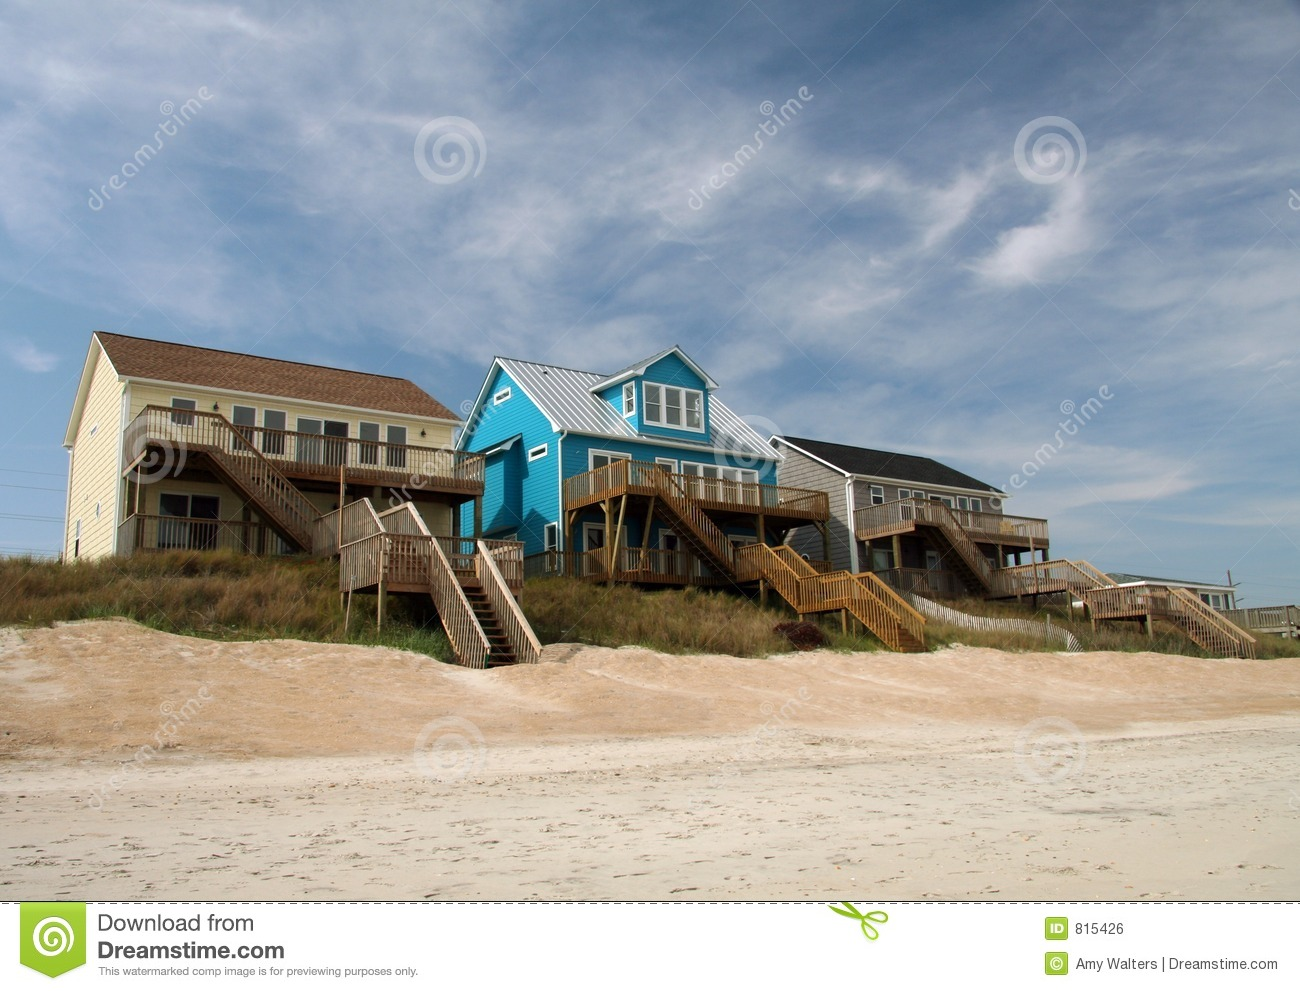 ocean front beach houses royalty free stock image image